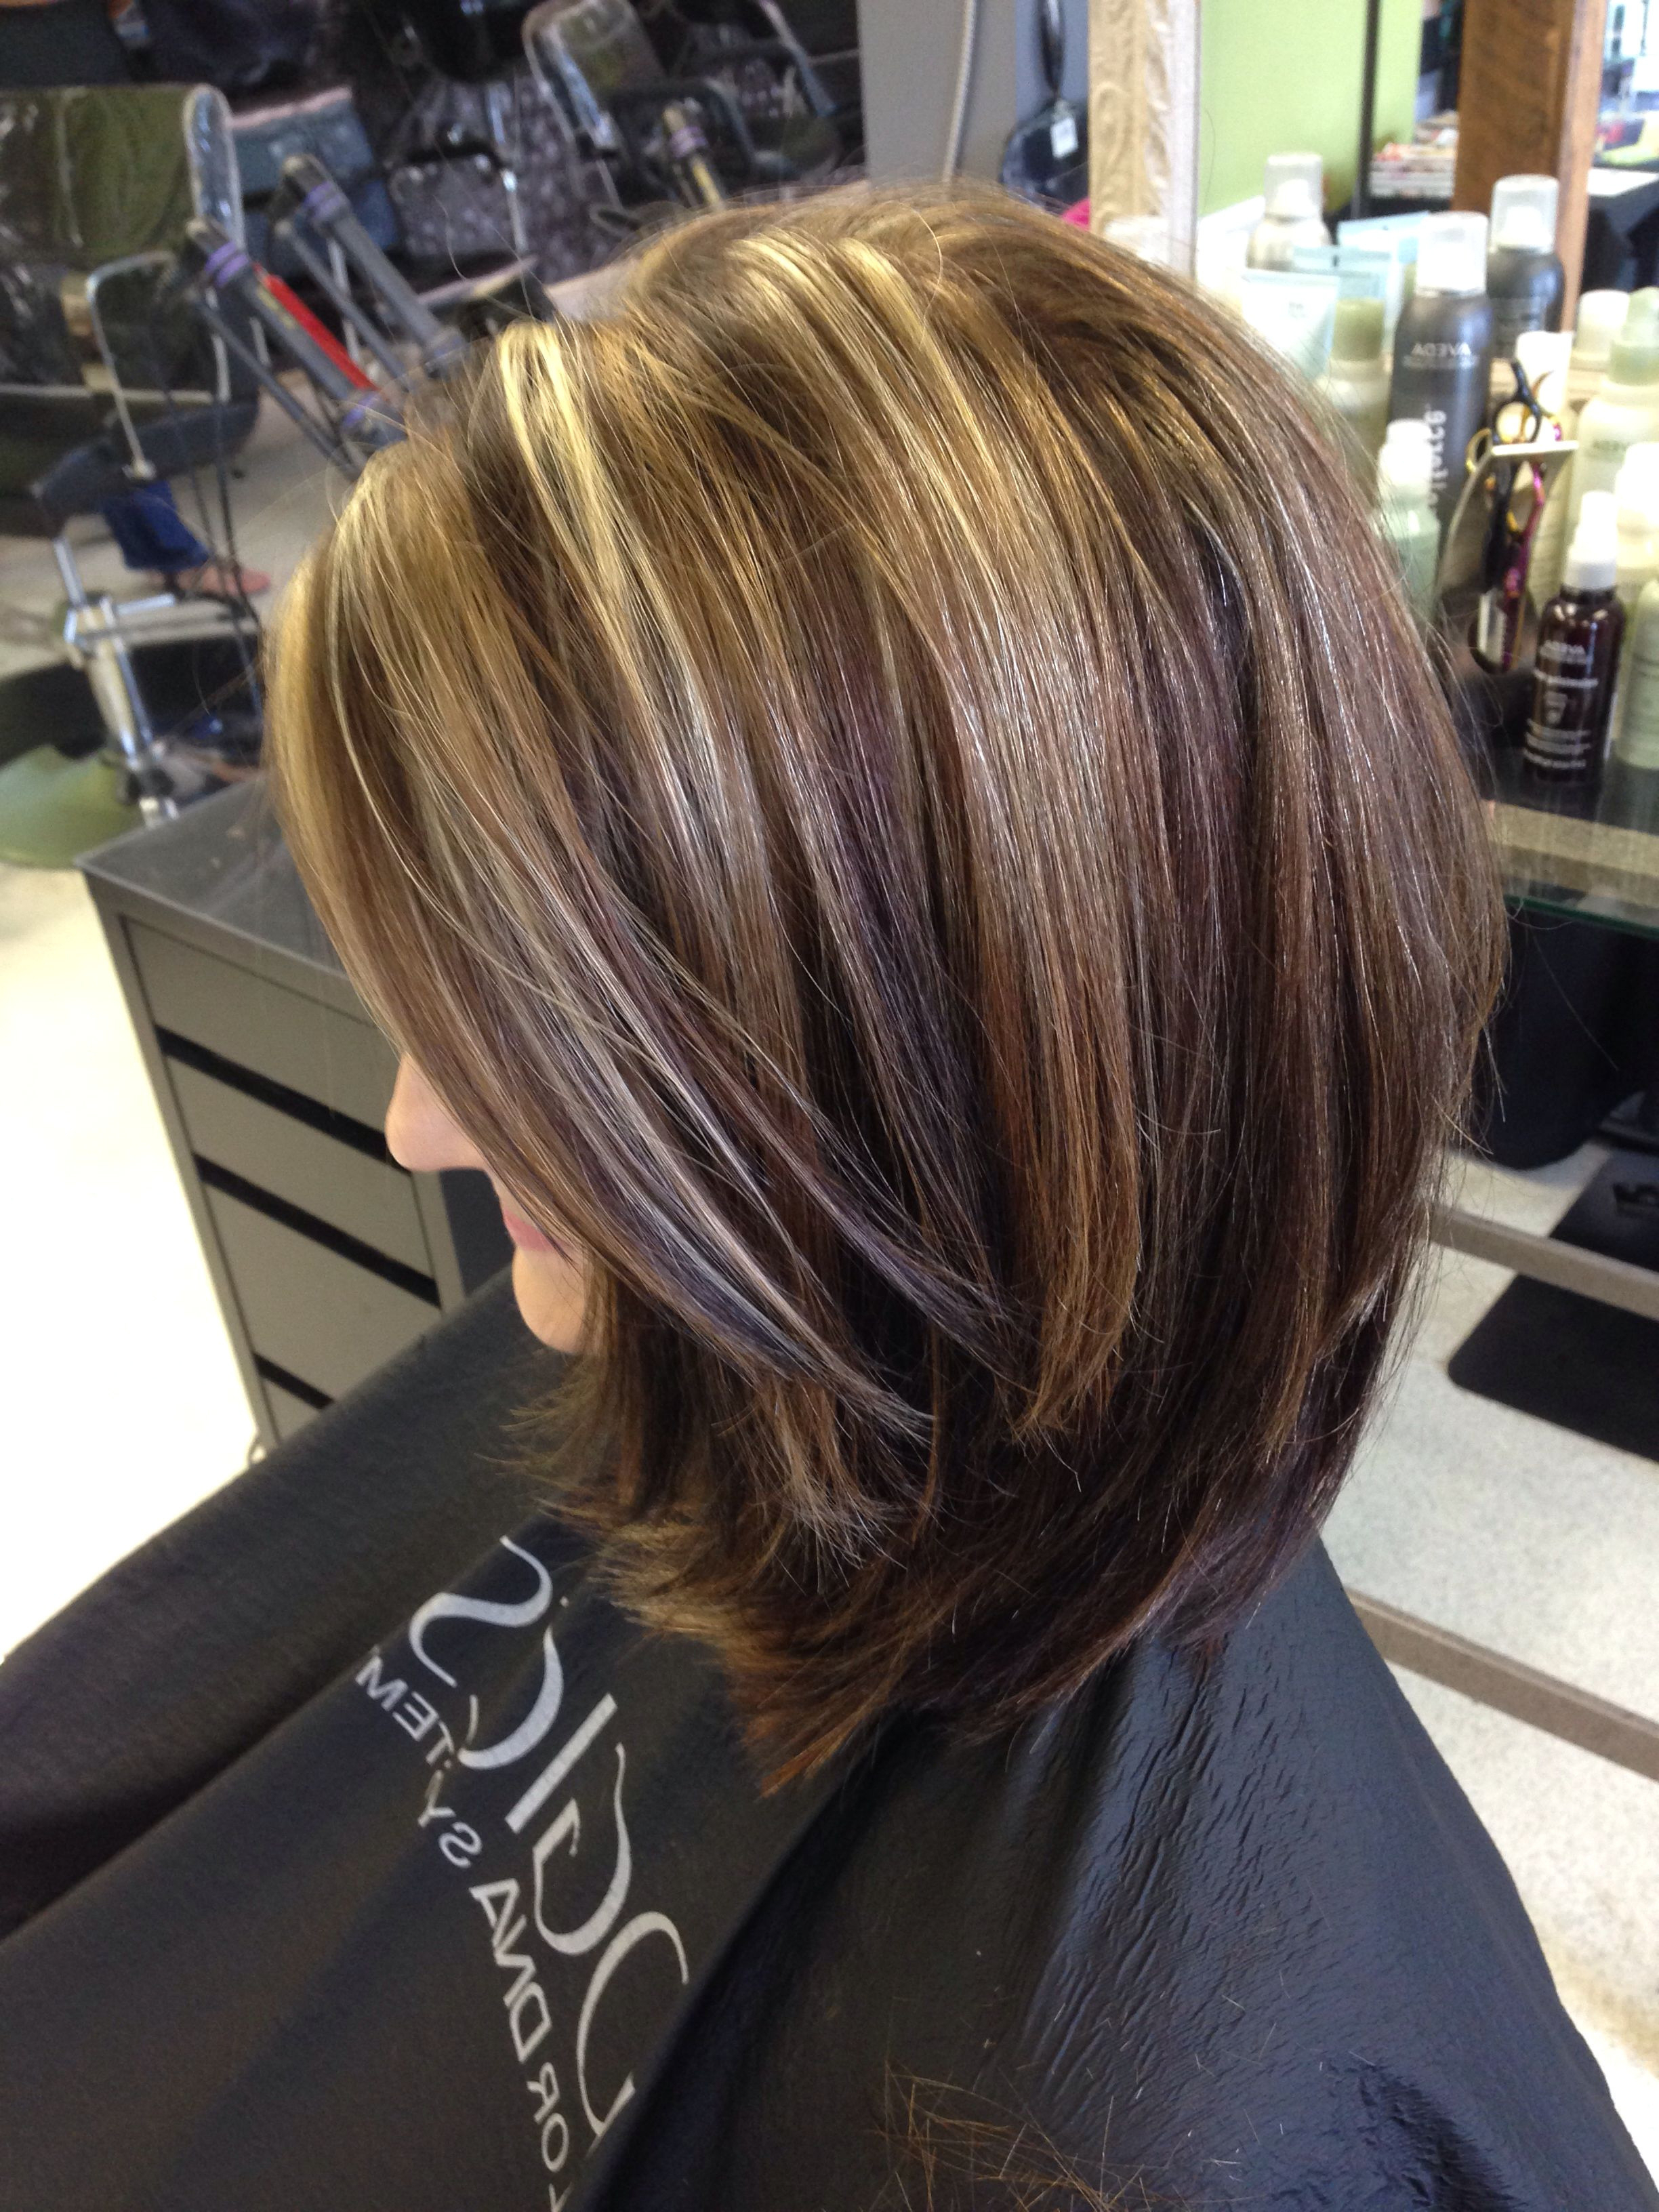 Fresh Cute Short Hairstyles And Colors – Uternity Regarding Cute Color For Short Hair (View 6 of 25)